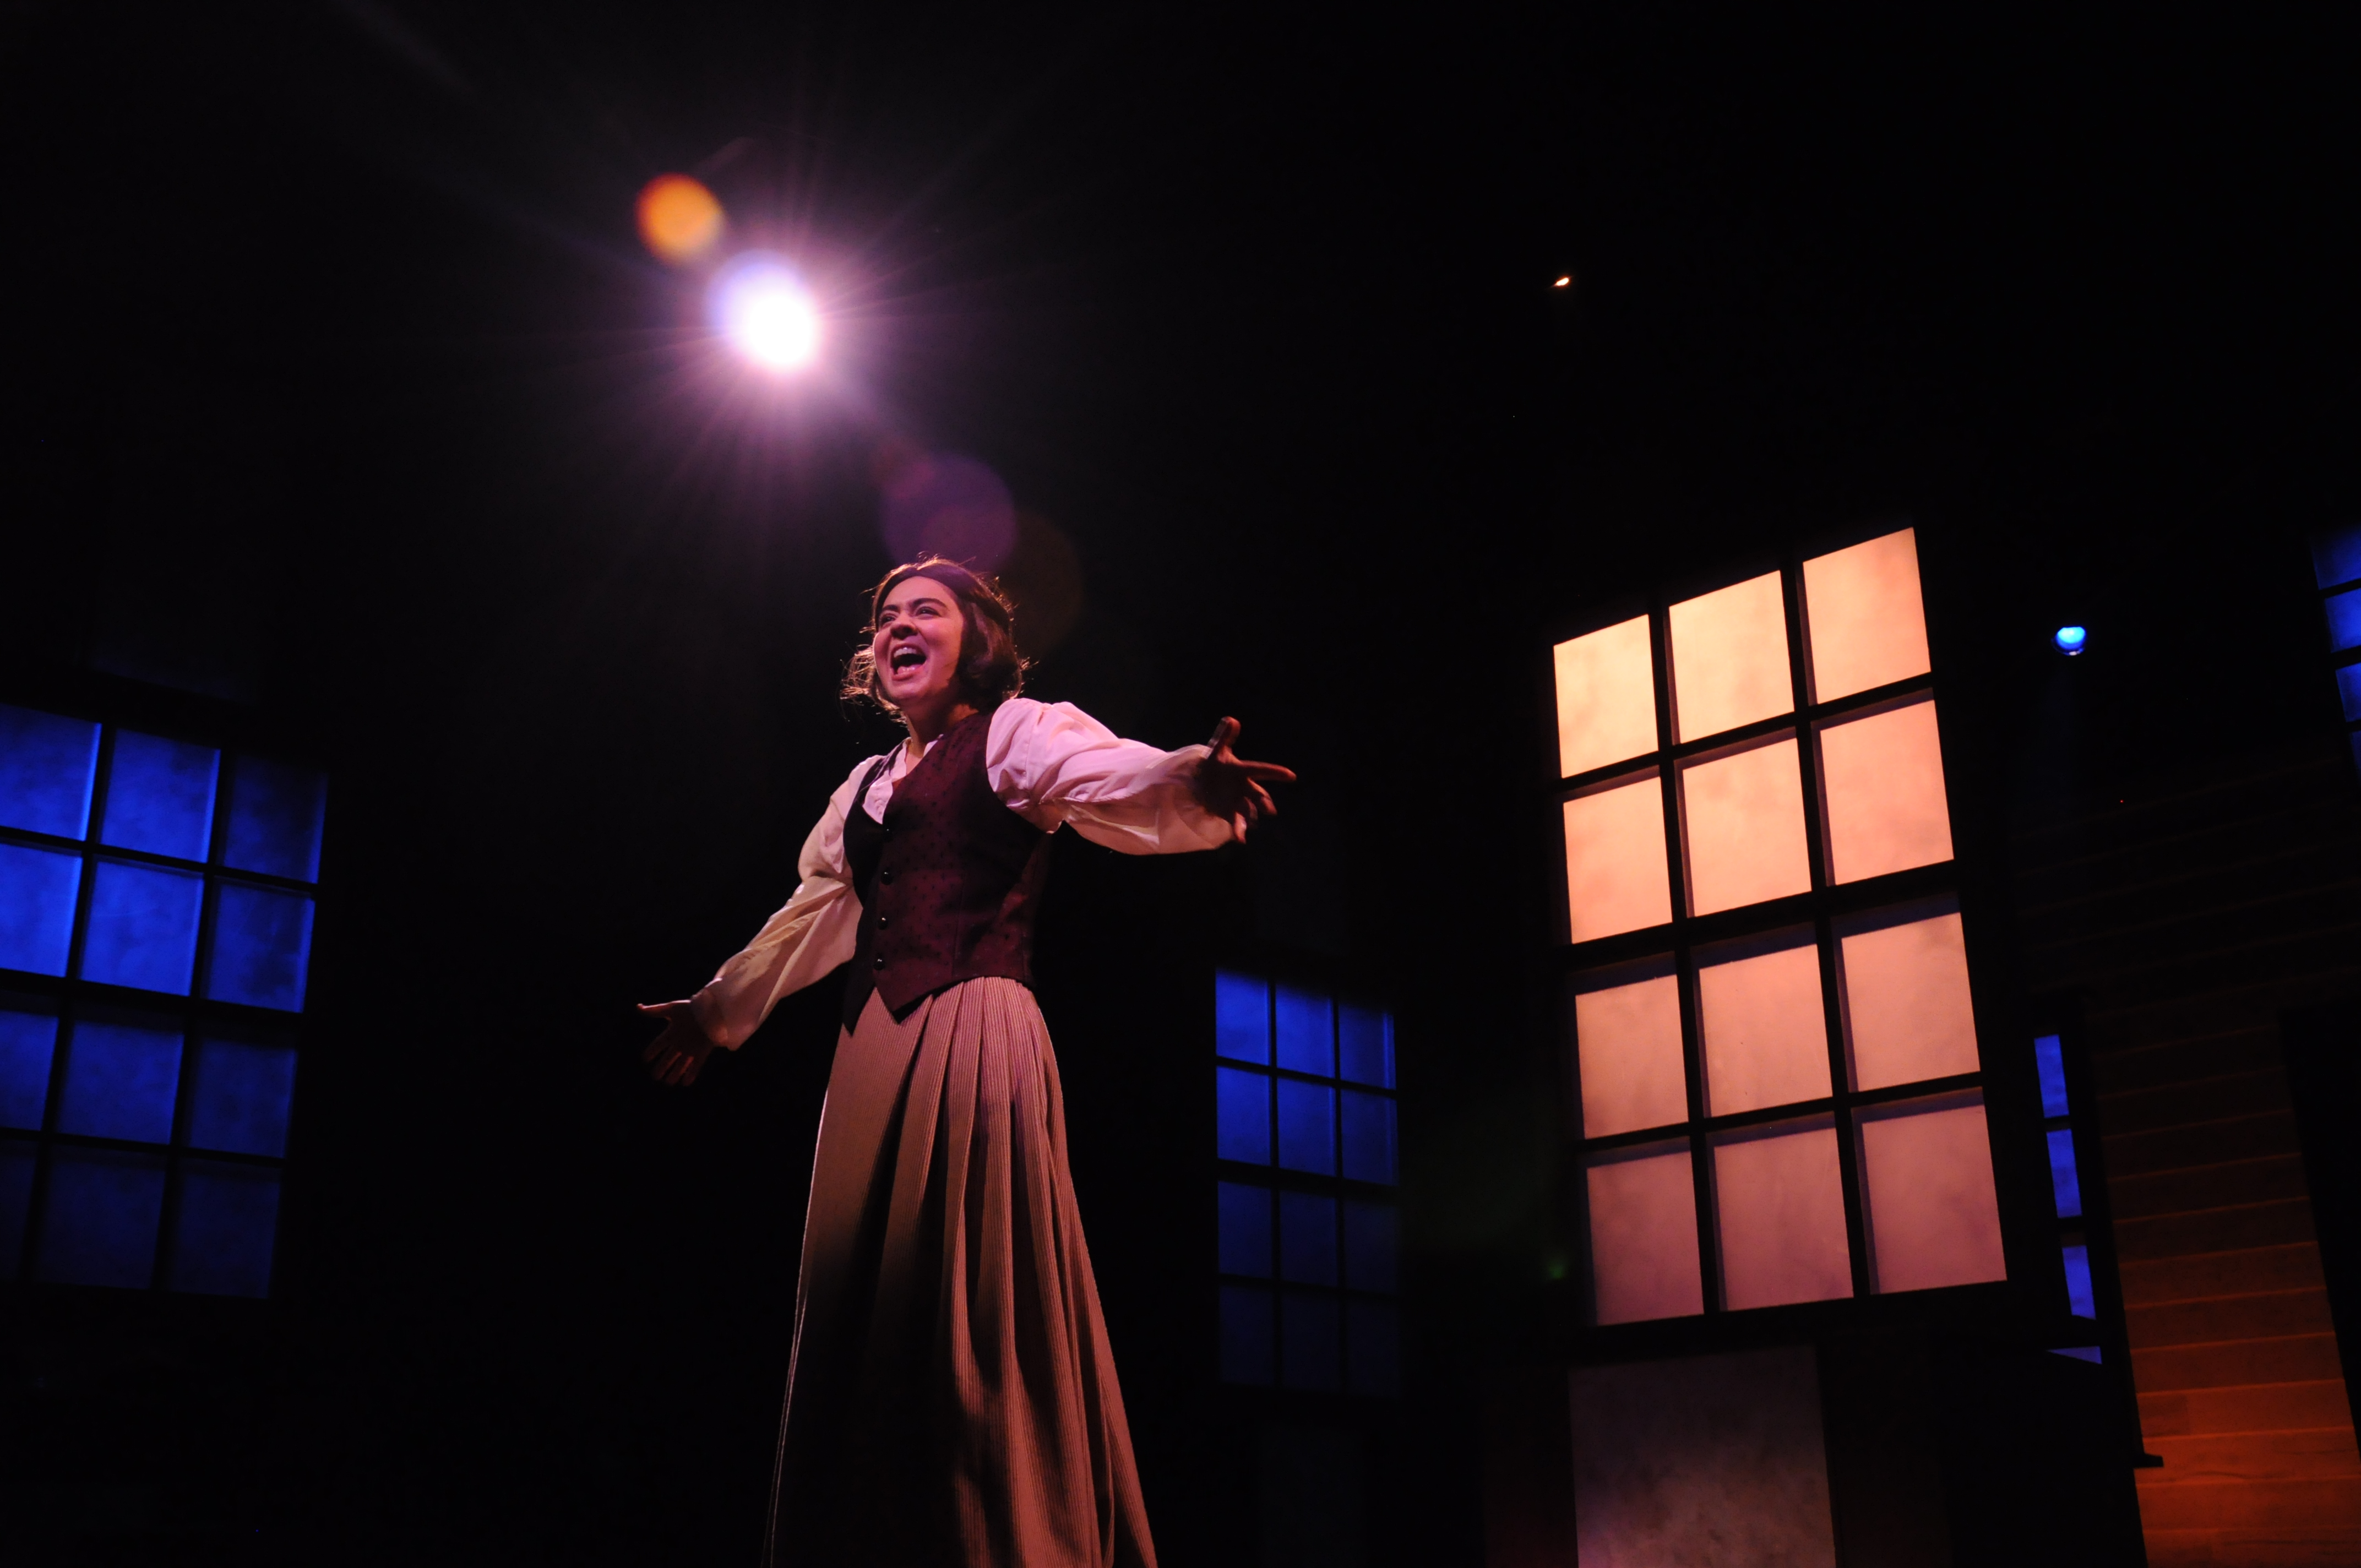 An actor in American University's 2017 production of Little Women sings on stage at the Greenberg Theatre.